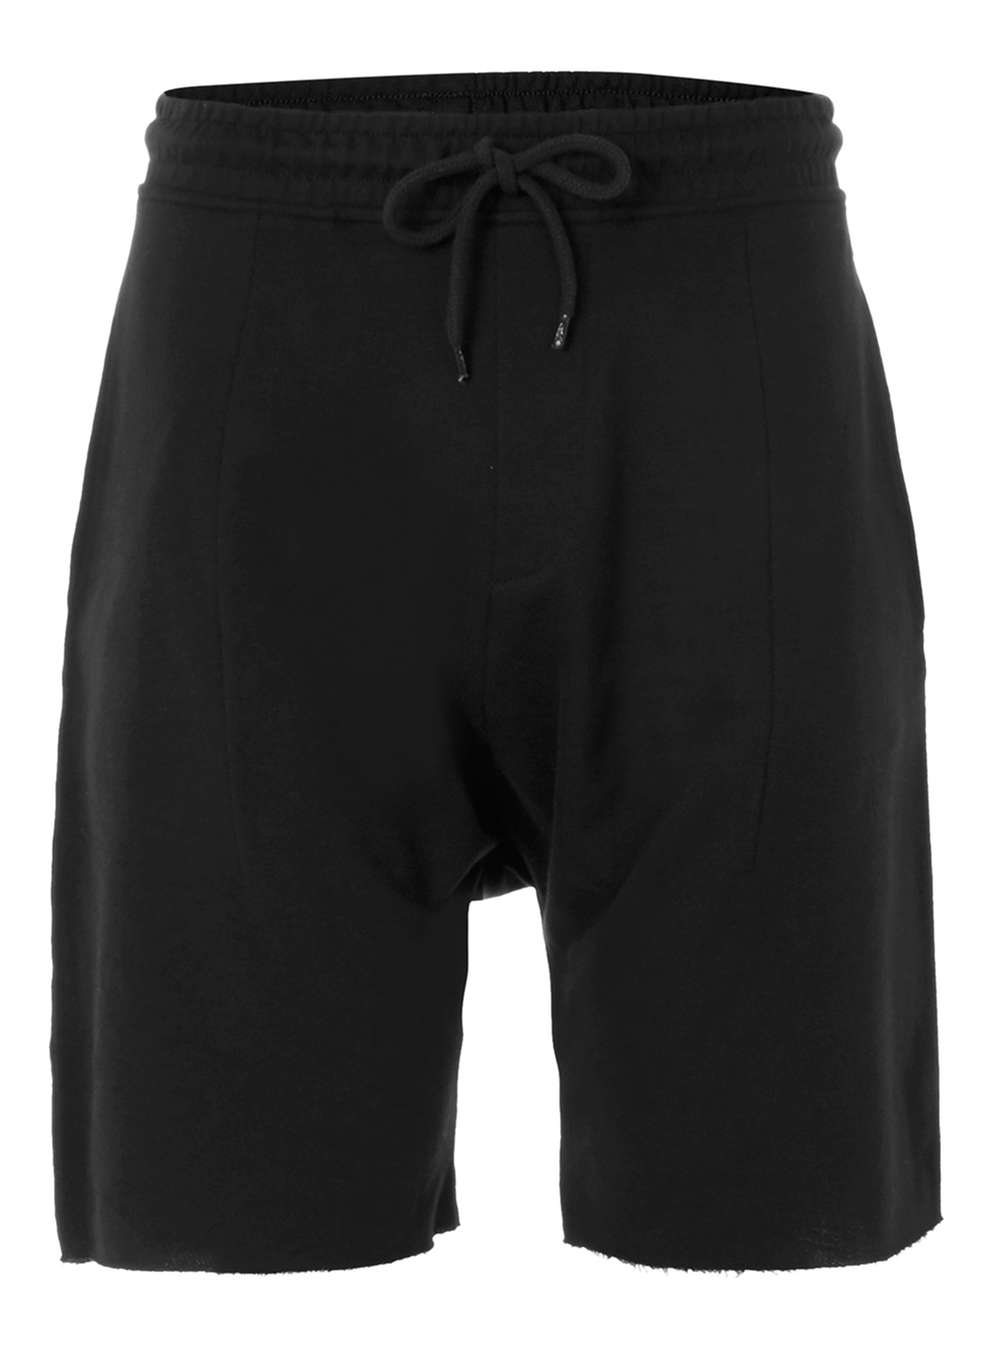 Black Drop Crotch Jersey Shorts